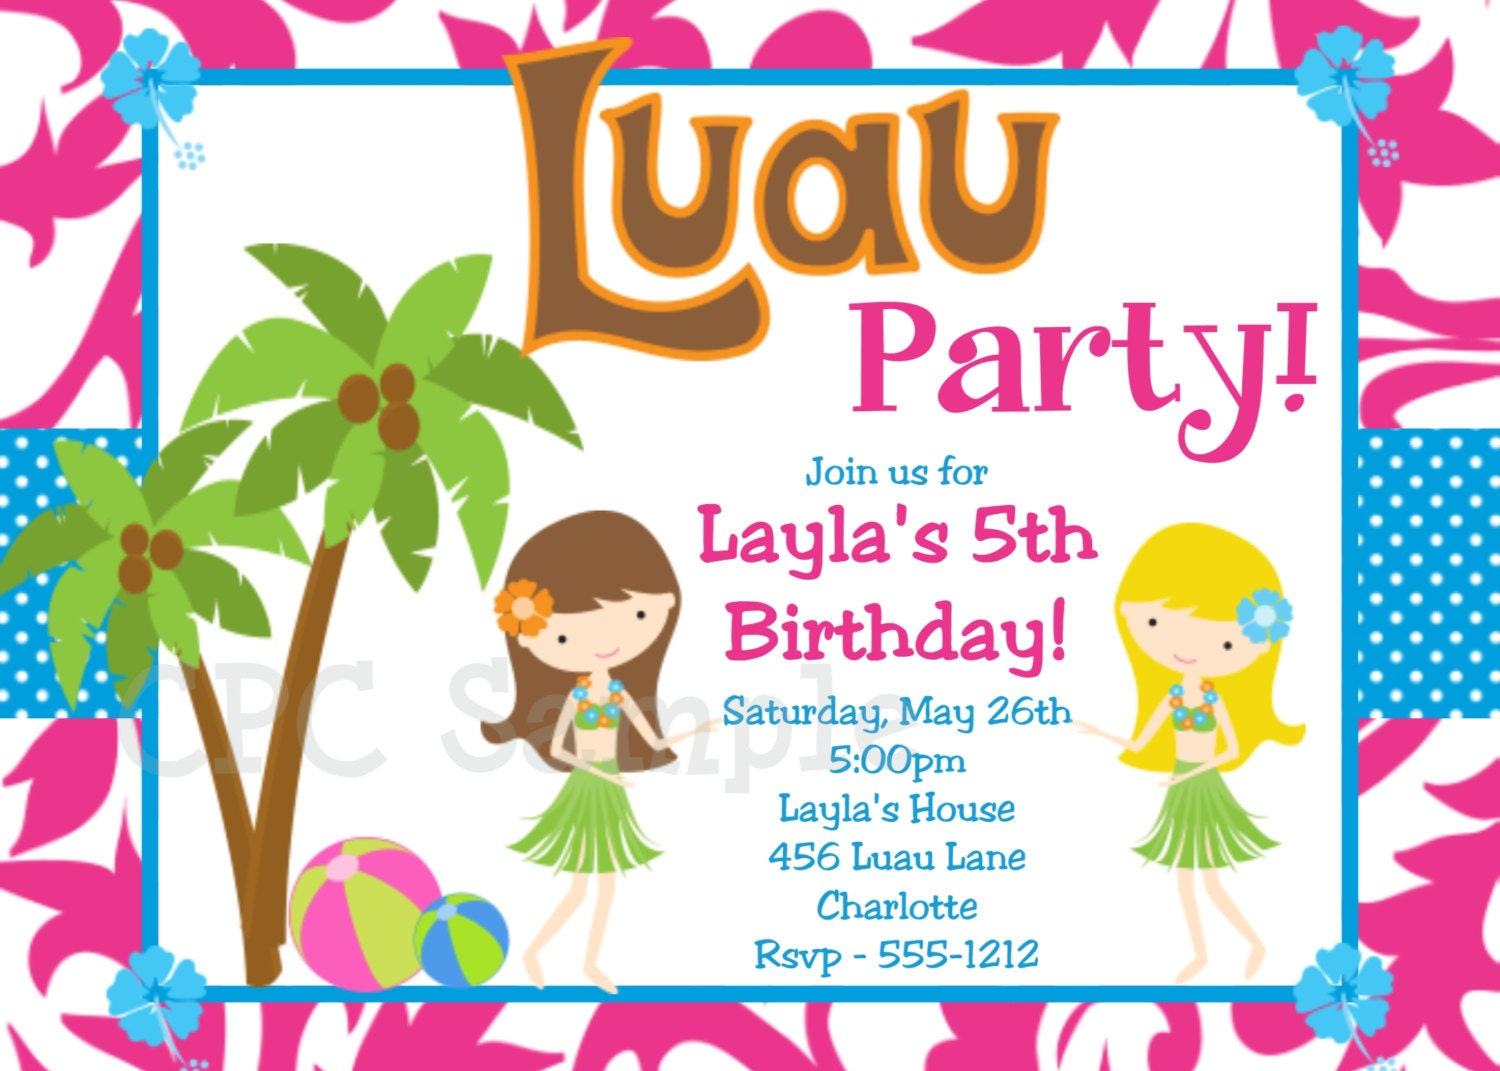 Luau Birthday Invitation Luau Party Invitations Printable or